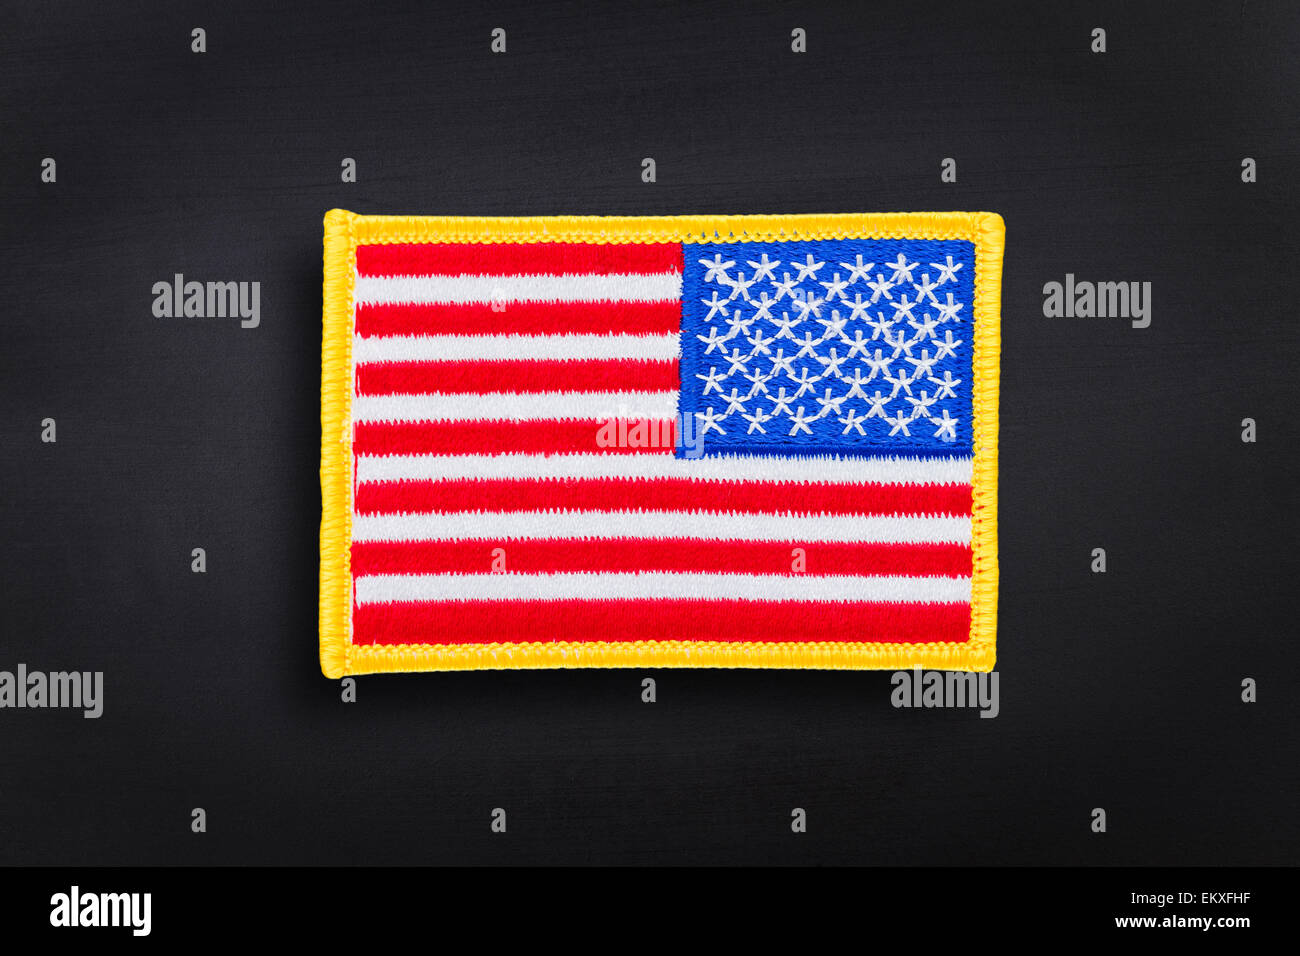 American flag on a dark background - Stock Image